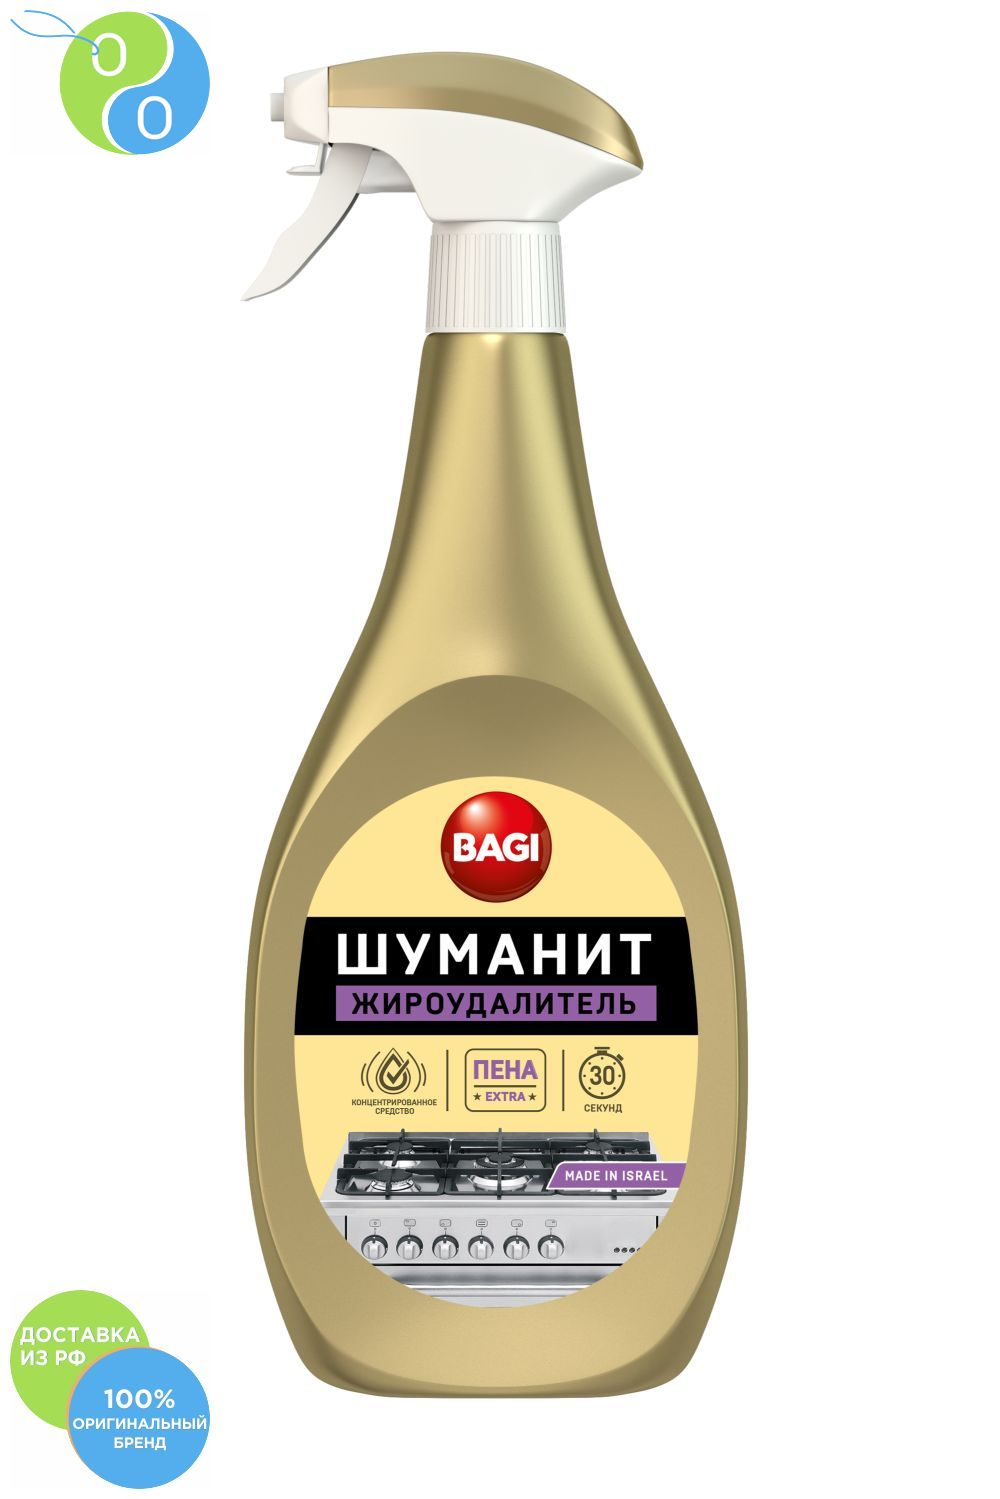 лучшая цена Bagi Schumann ZHIROUDALITEL EXTRA FOAM 400 ml,Schumann Zhiroudalitel EXTRA Pena. A powerful tool for instantaneous removal of stubborn resistant and burnt fat zagryaneny with plates, ovens, hoods, steam traps, grills,